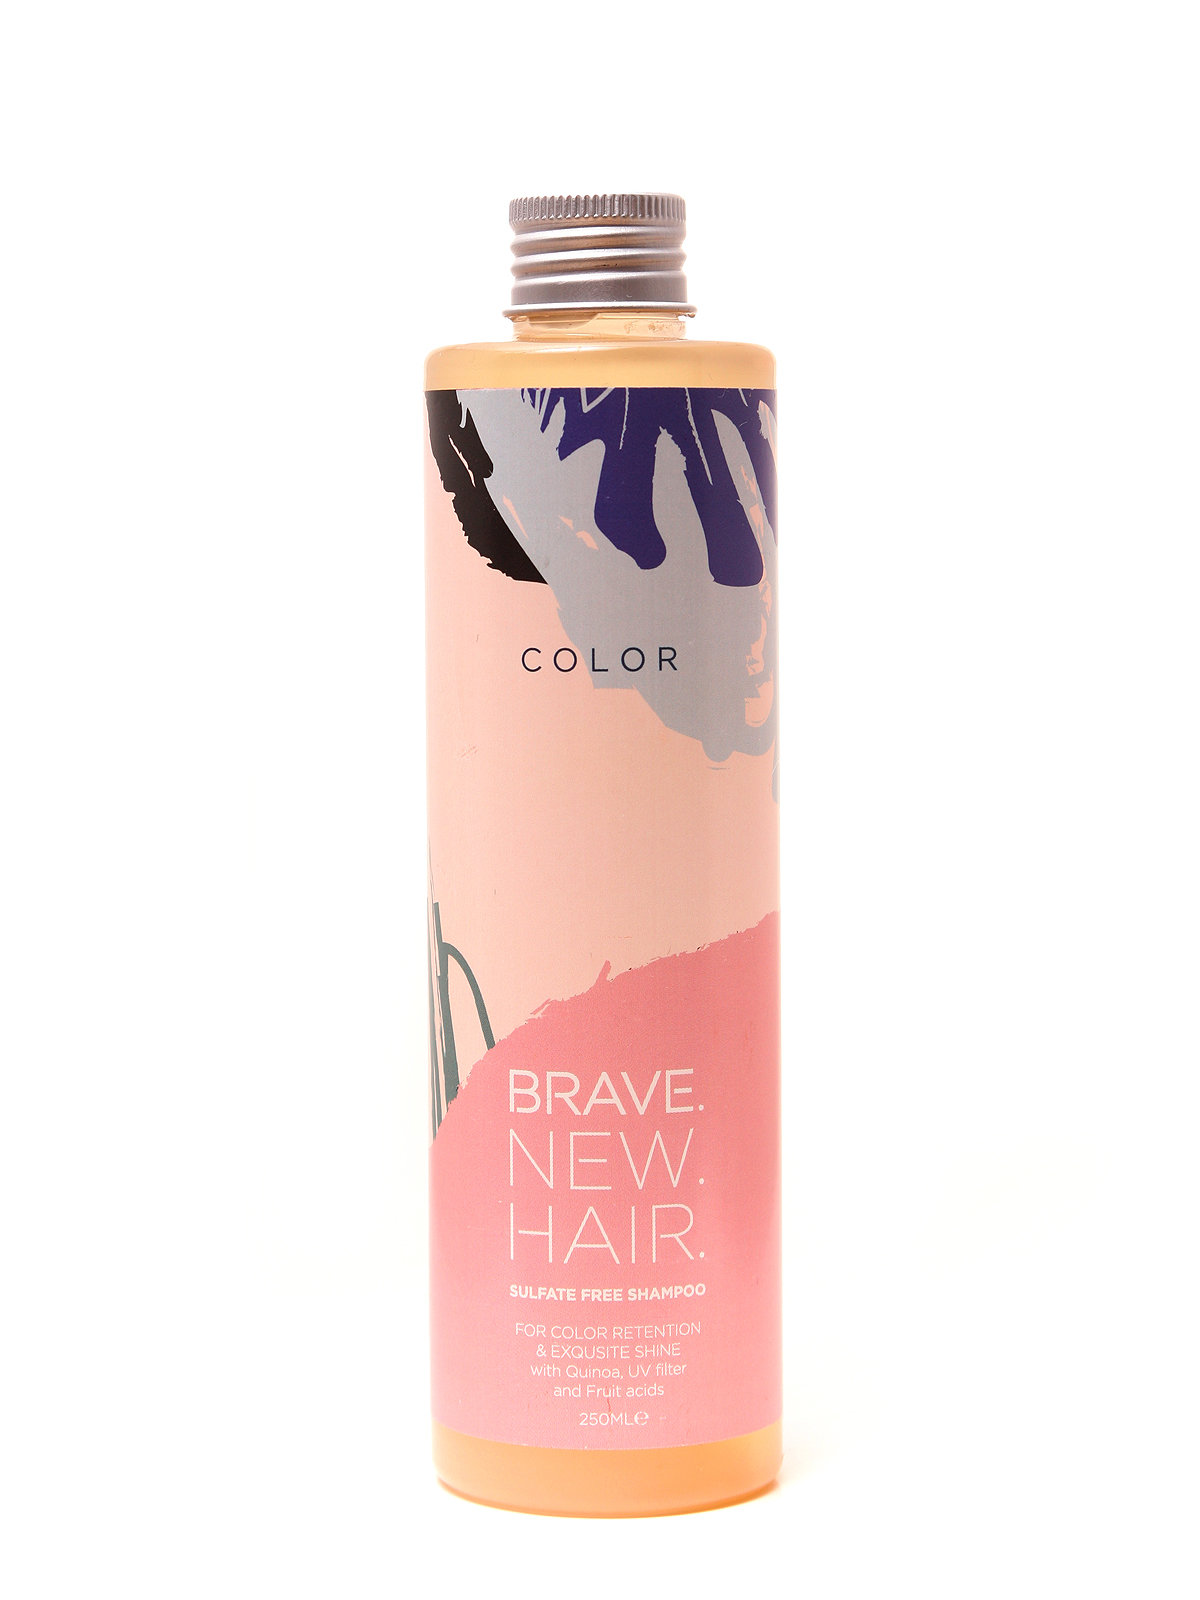 Shampoo for Coloured Hair Brave New Hair